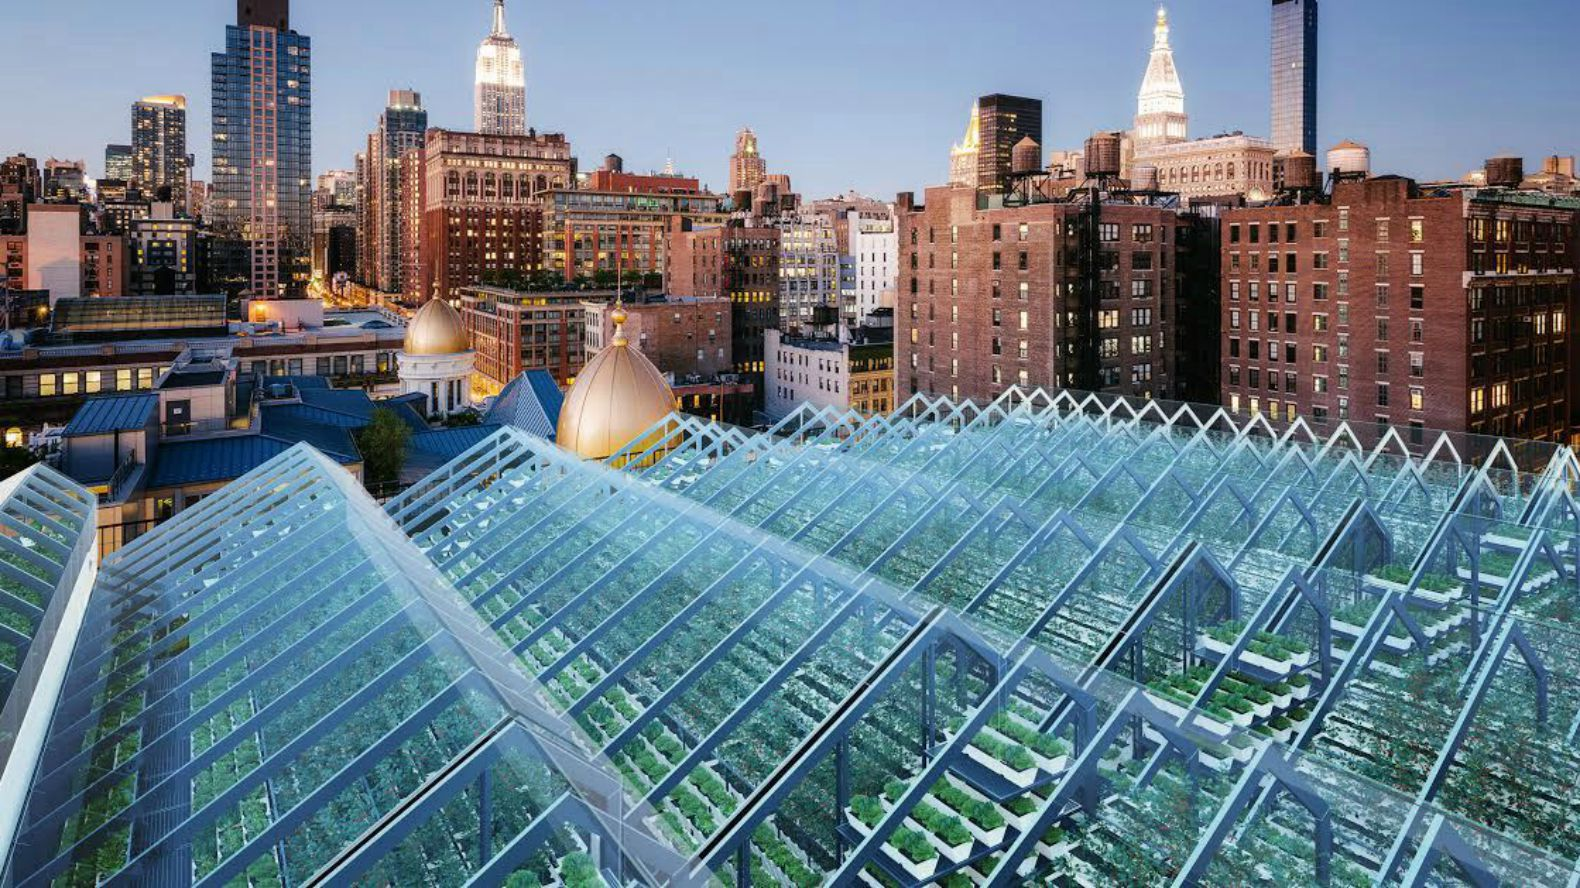 Vertical farming inhabitat green design innovation for Fish tag nyc